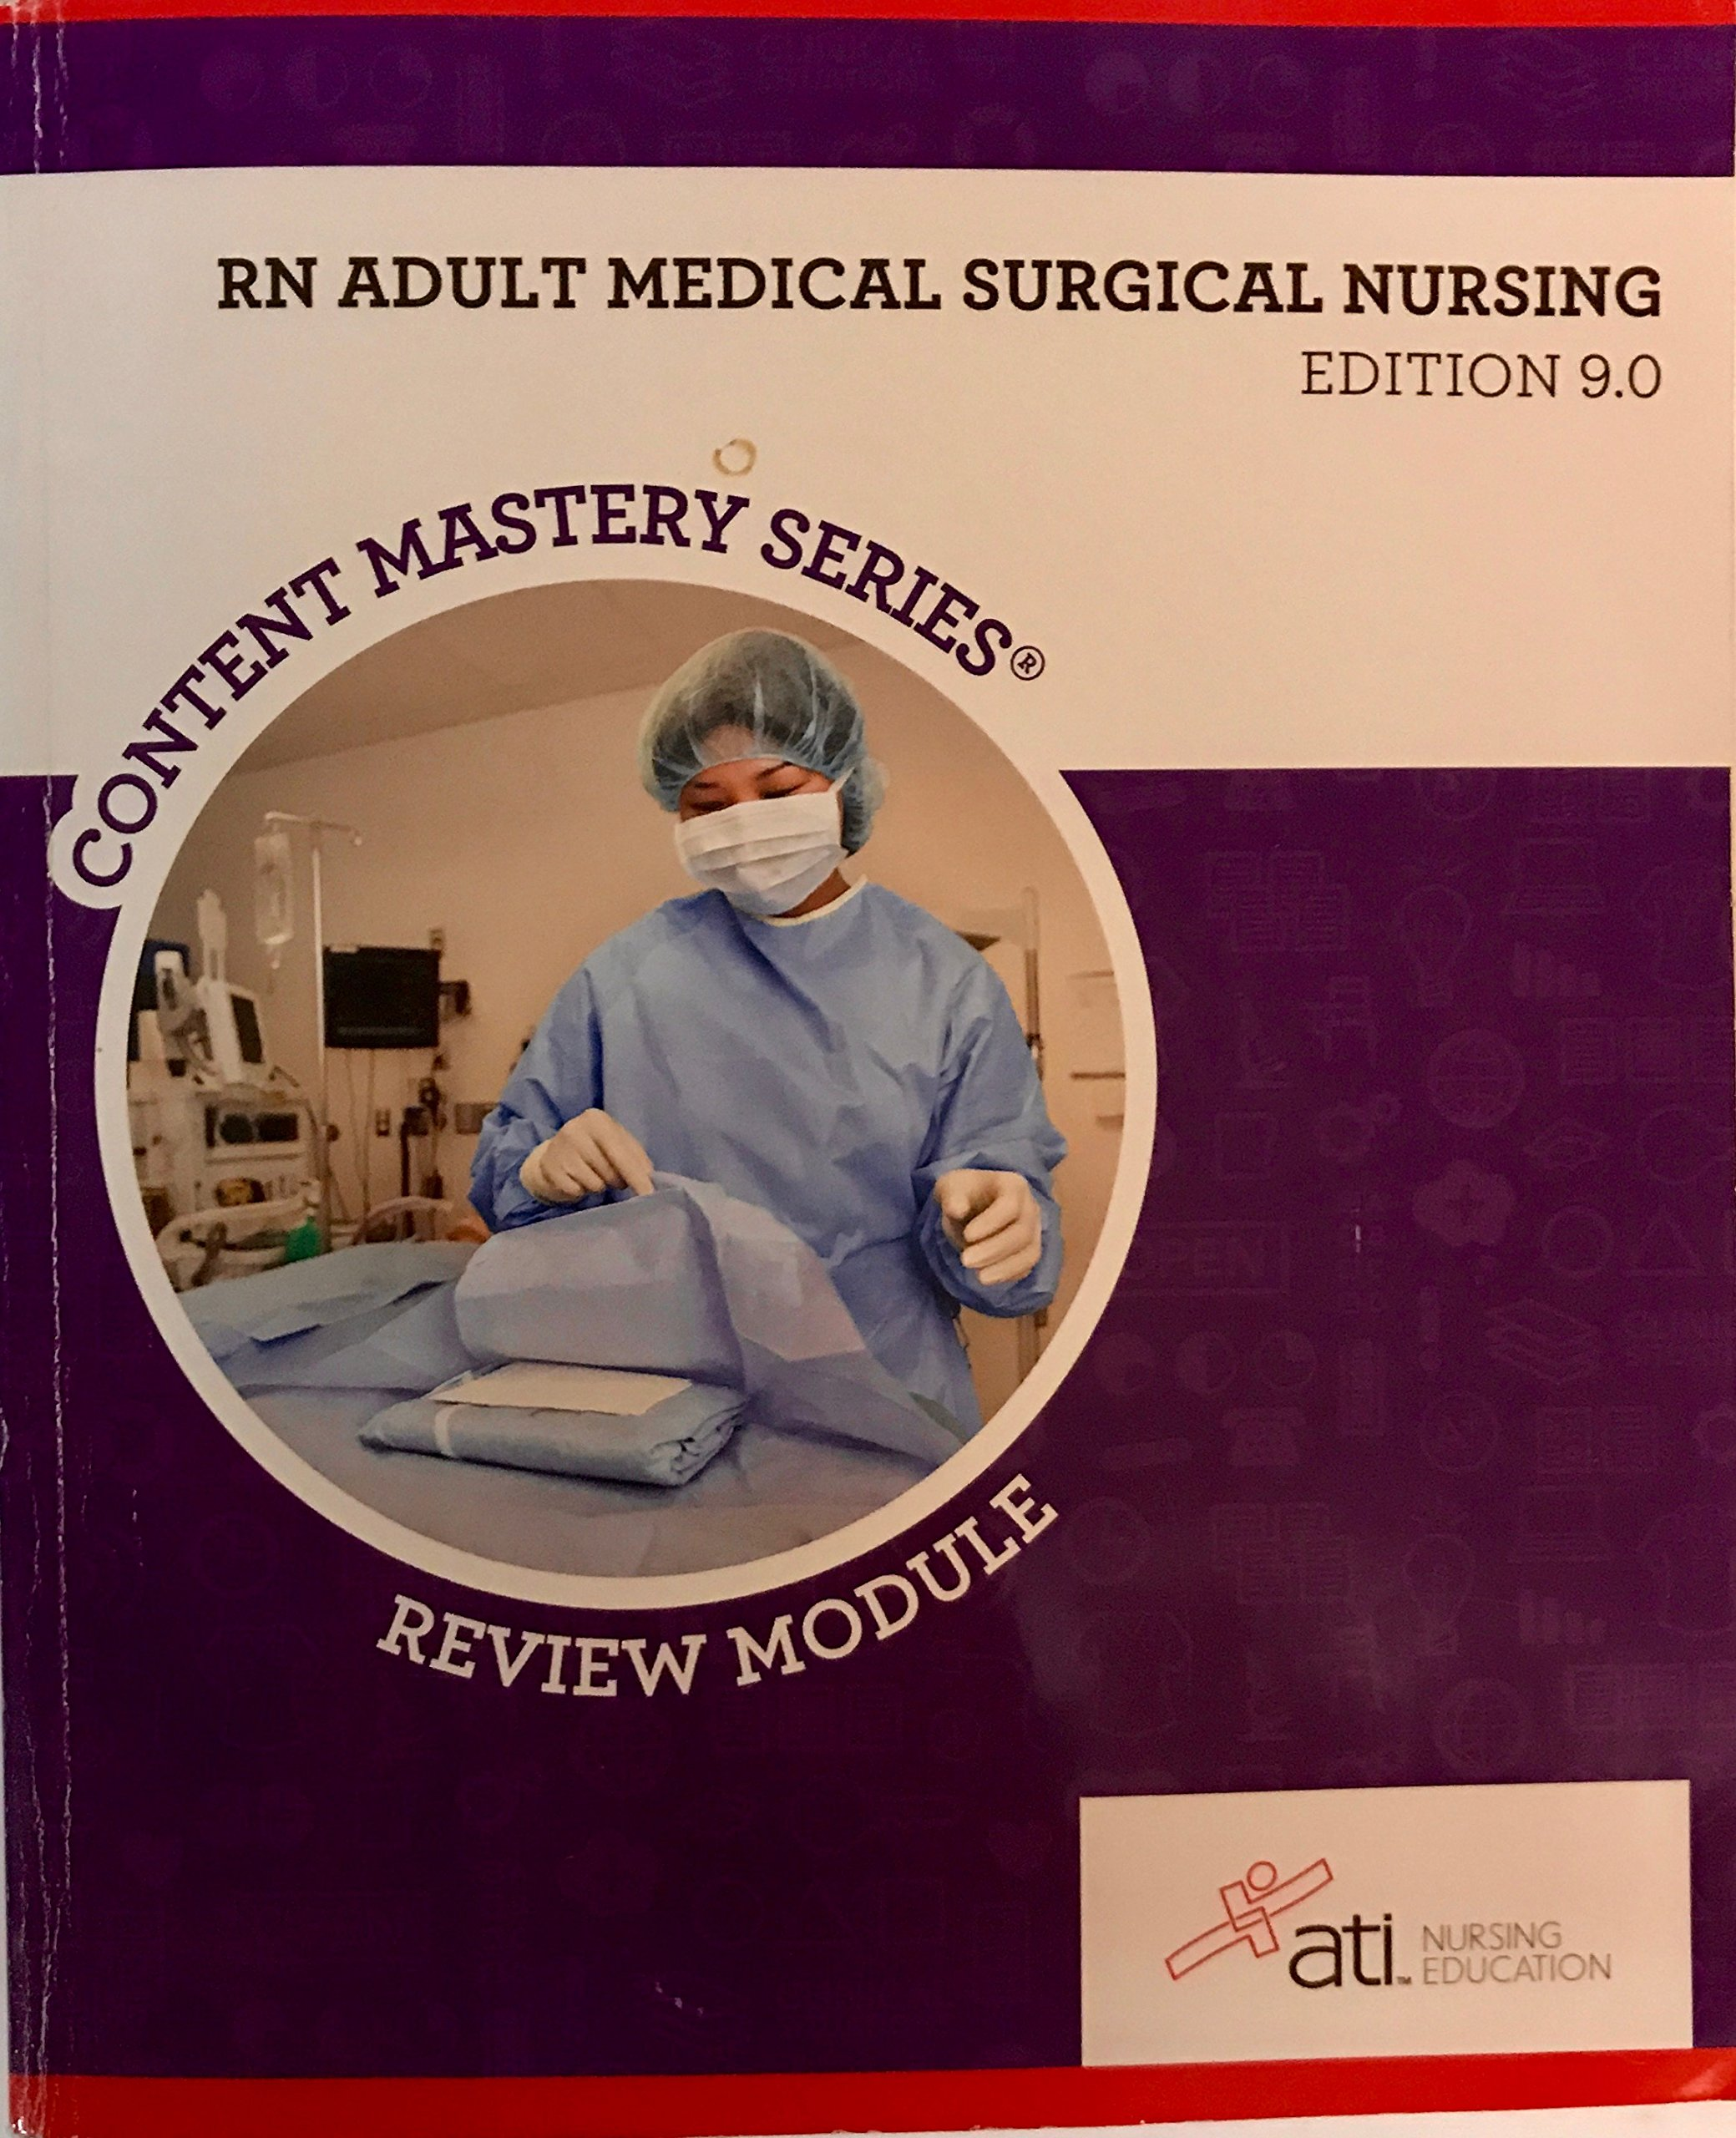 Rn adult medical surgical nursing edition 9 0 ati 9781565335400 rn adult medical surgical nursing edition 9 0 ati 9781565335400 amazon books fandeluxe Images